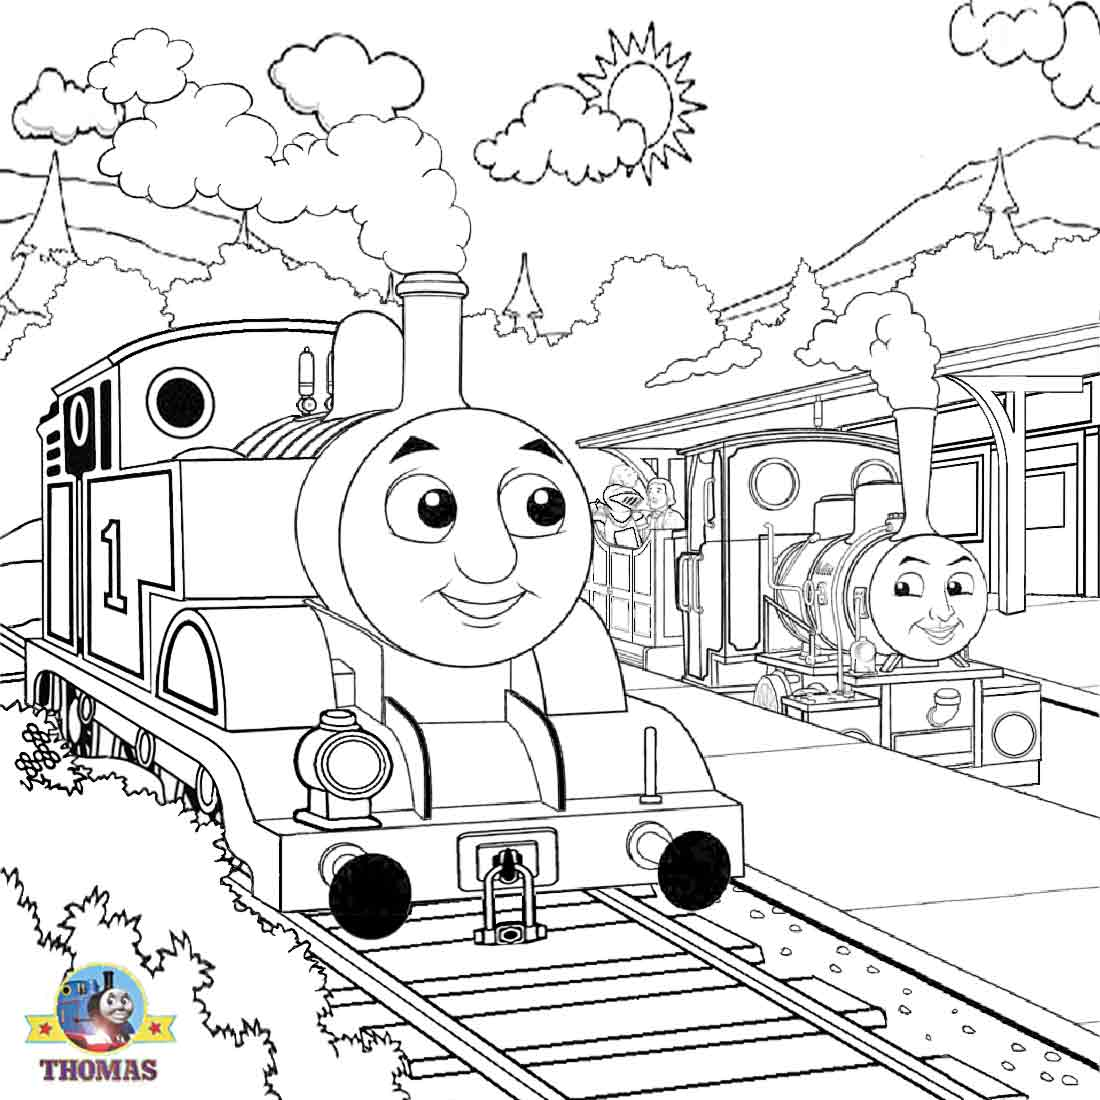 thomas coloring pages train engineer - photo#34